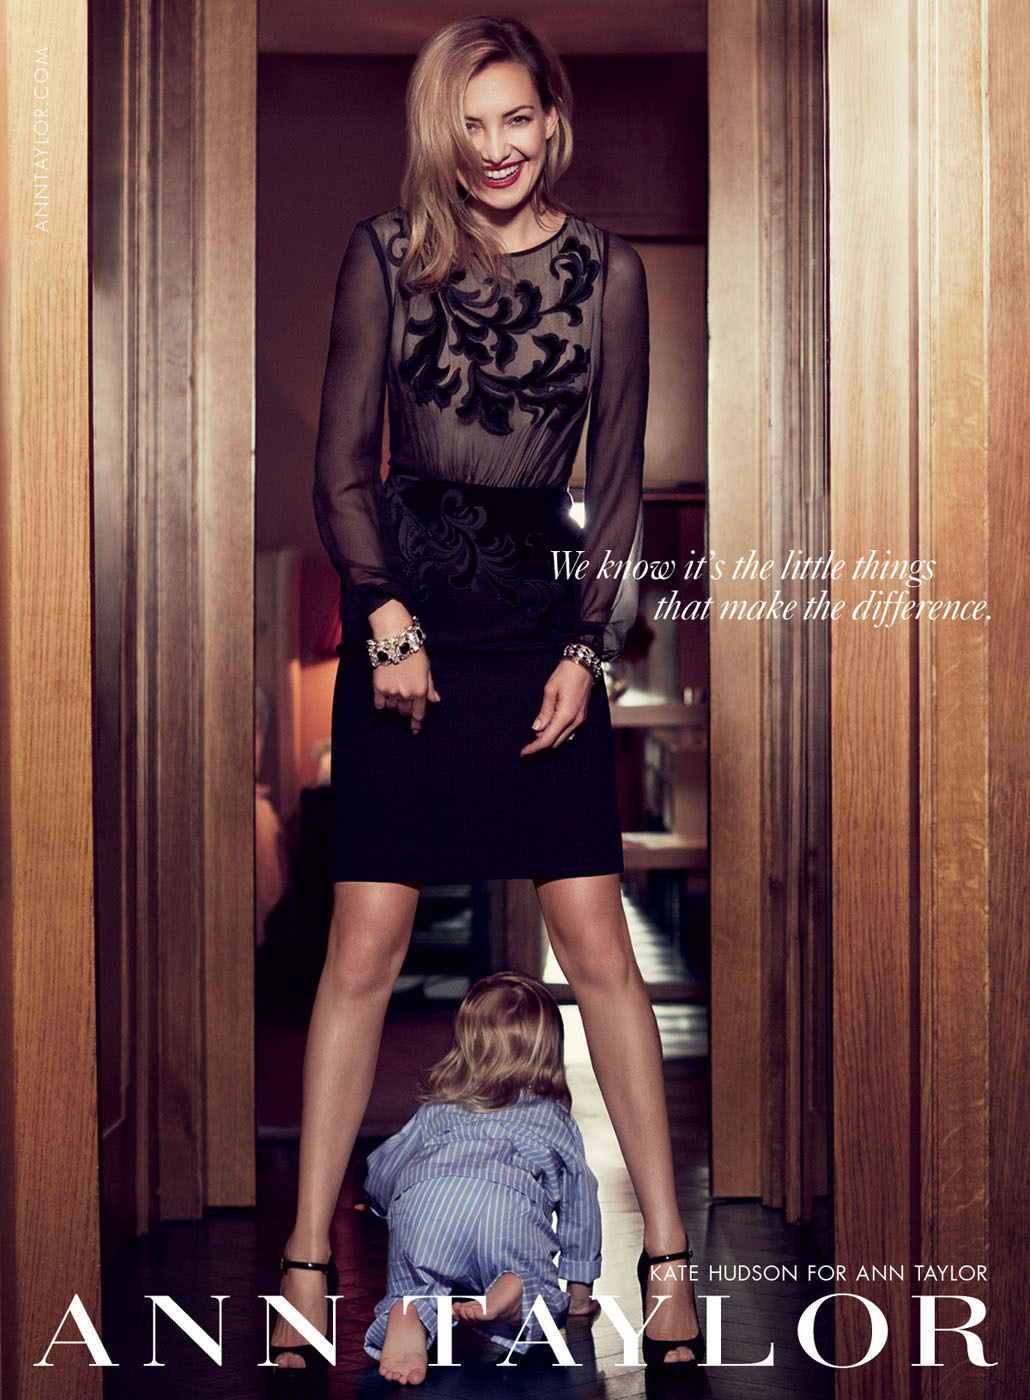 Ann Taylor Celebrates a Chic Holiday Season with Kate Hudson